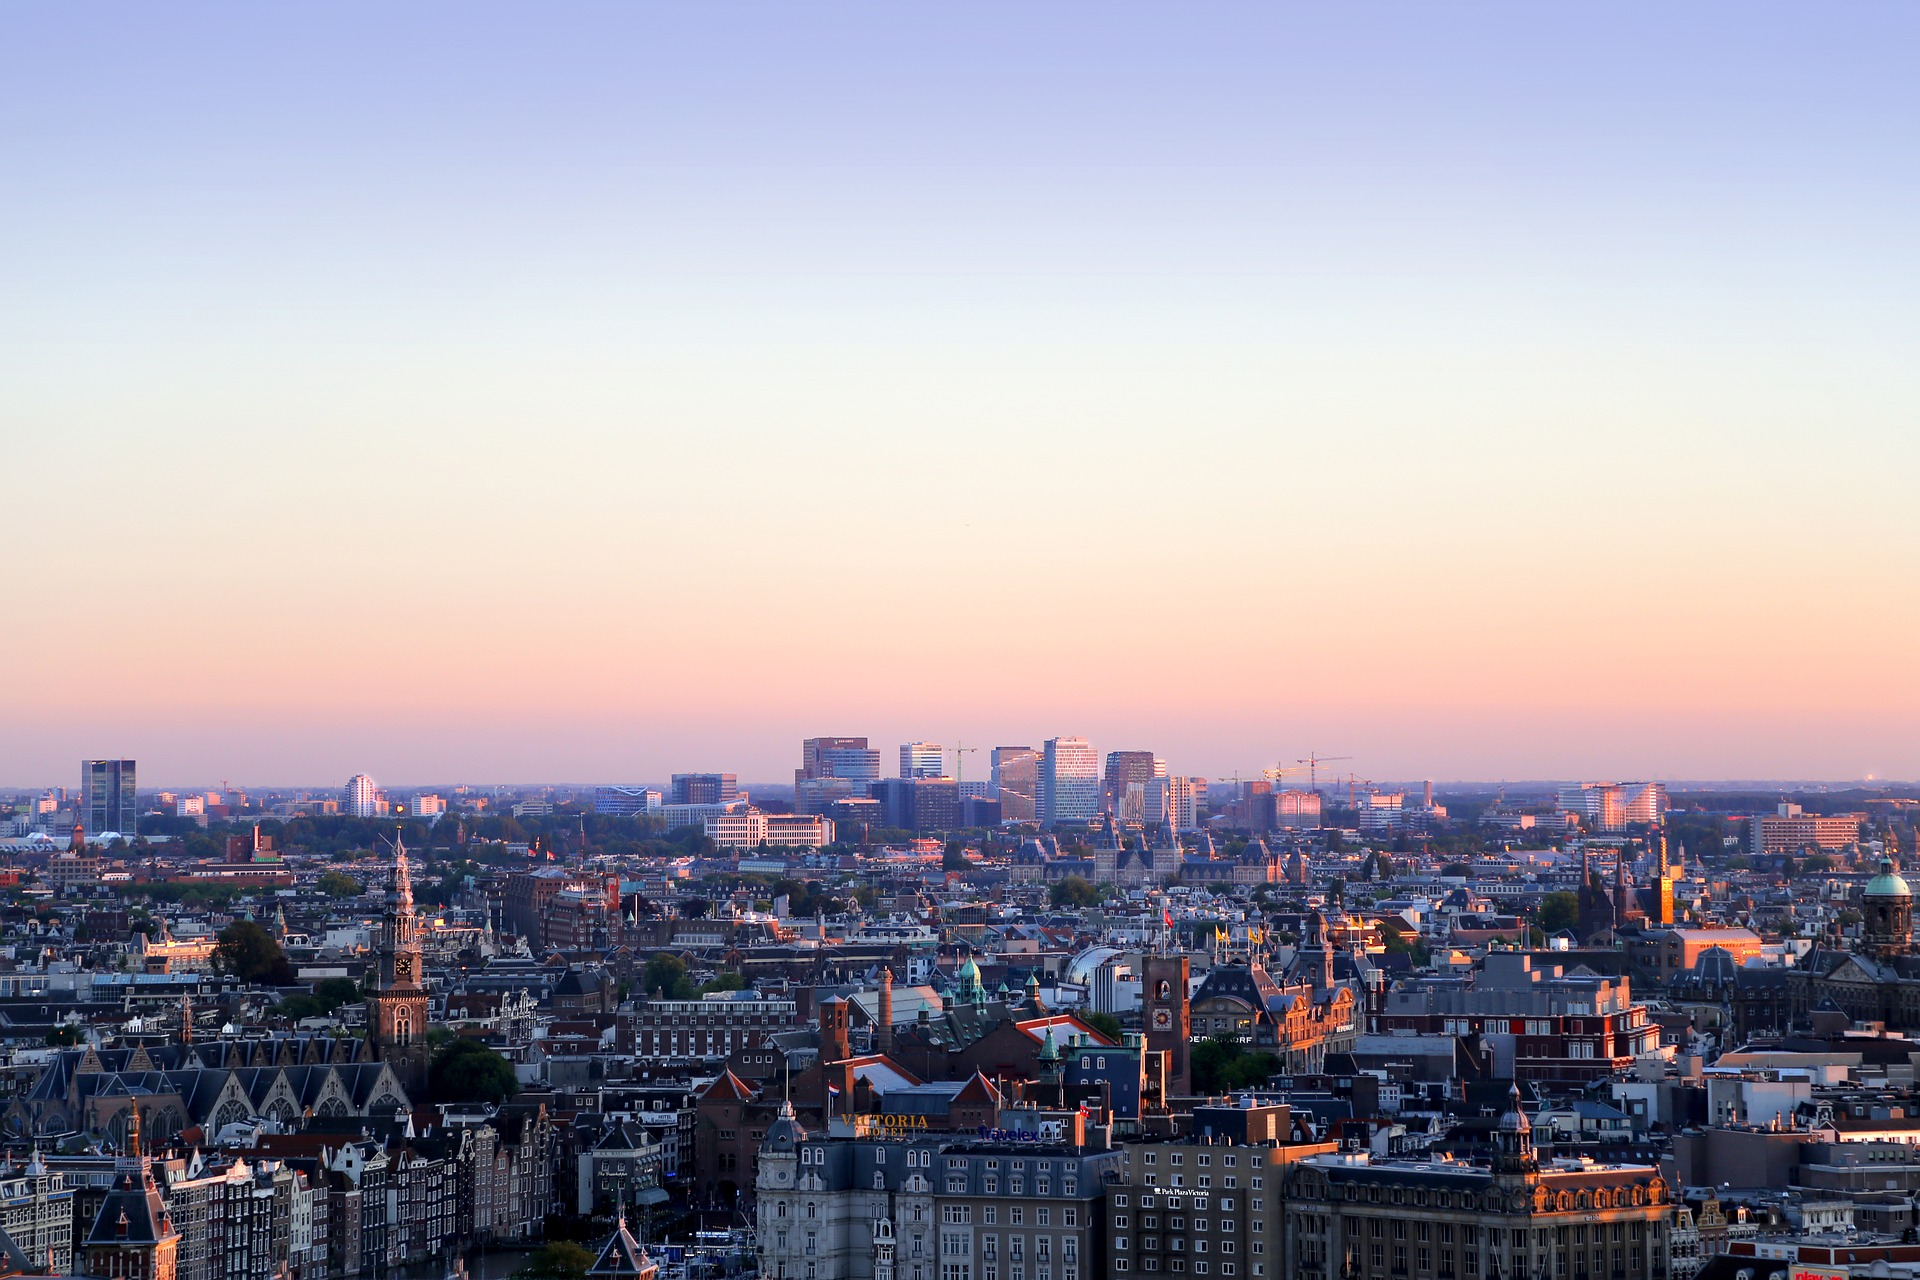 a skyline view of Amsterdam, the site of the fourth annual Phocuswright Europe